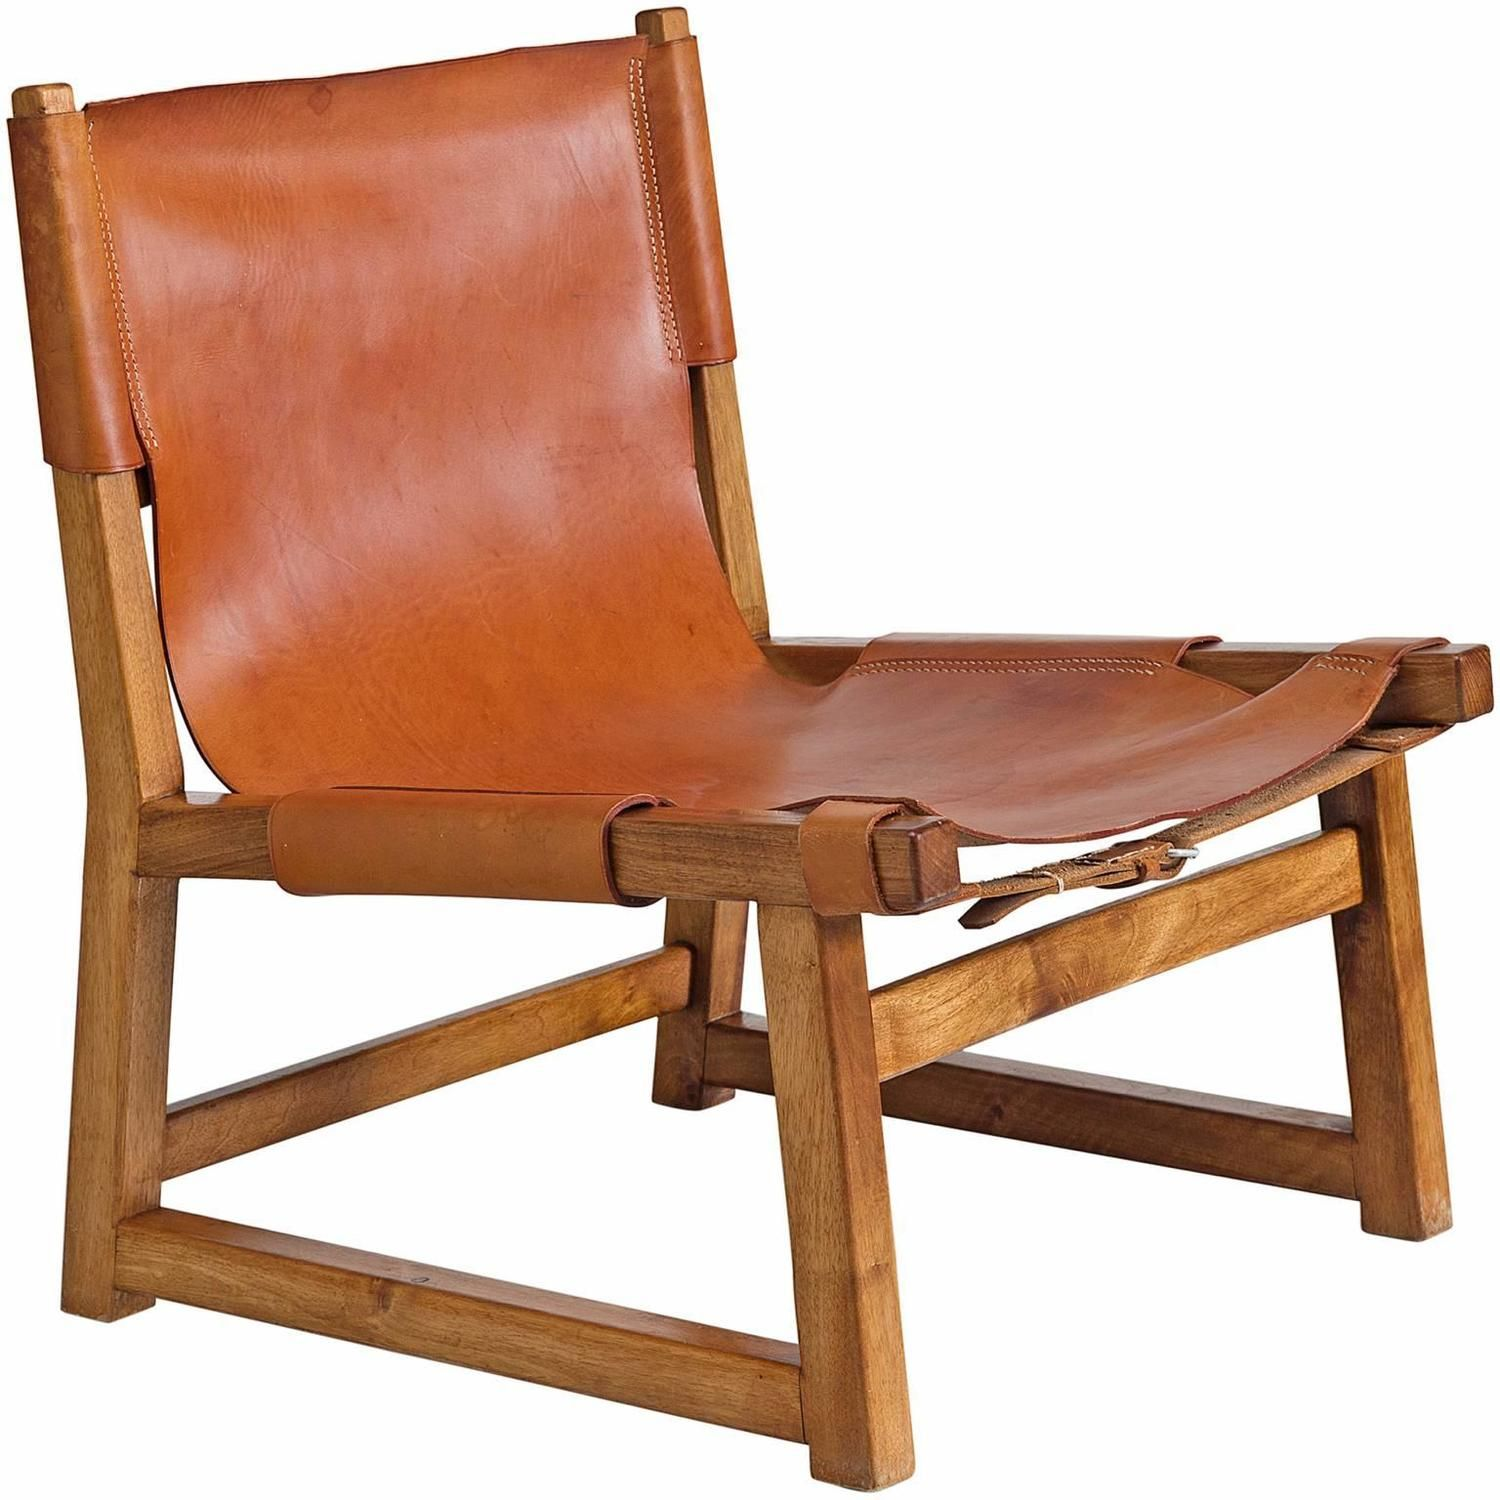 Danish hunting chair in oak and leather hunting chair